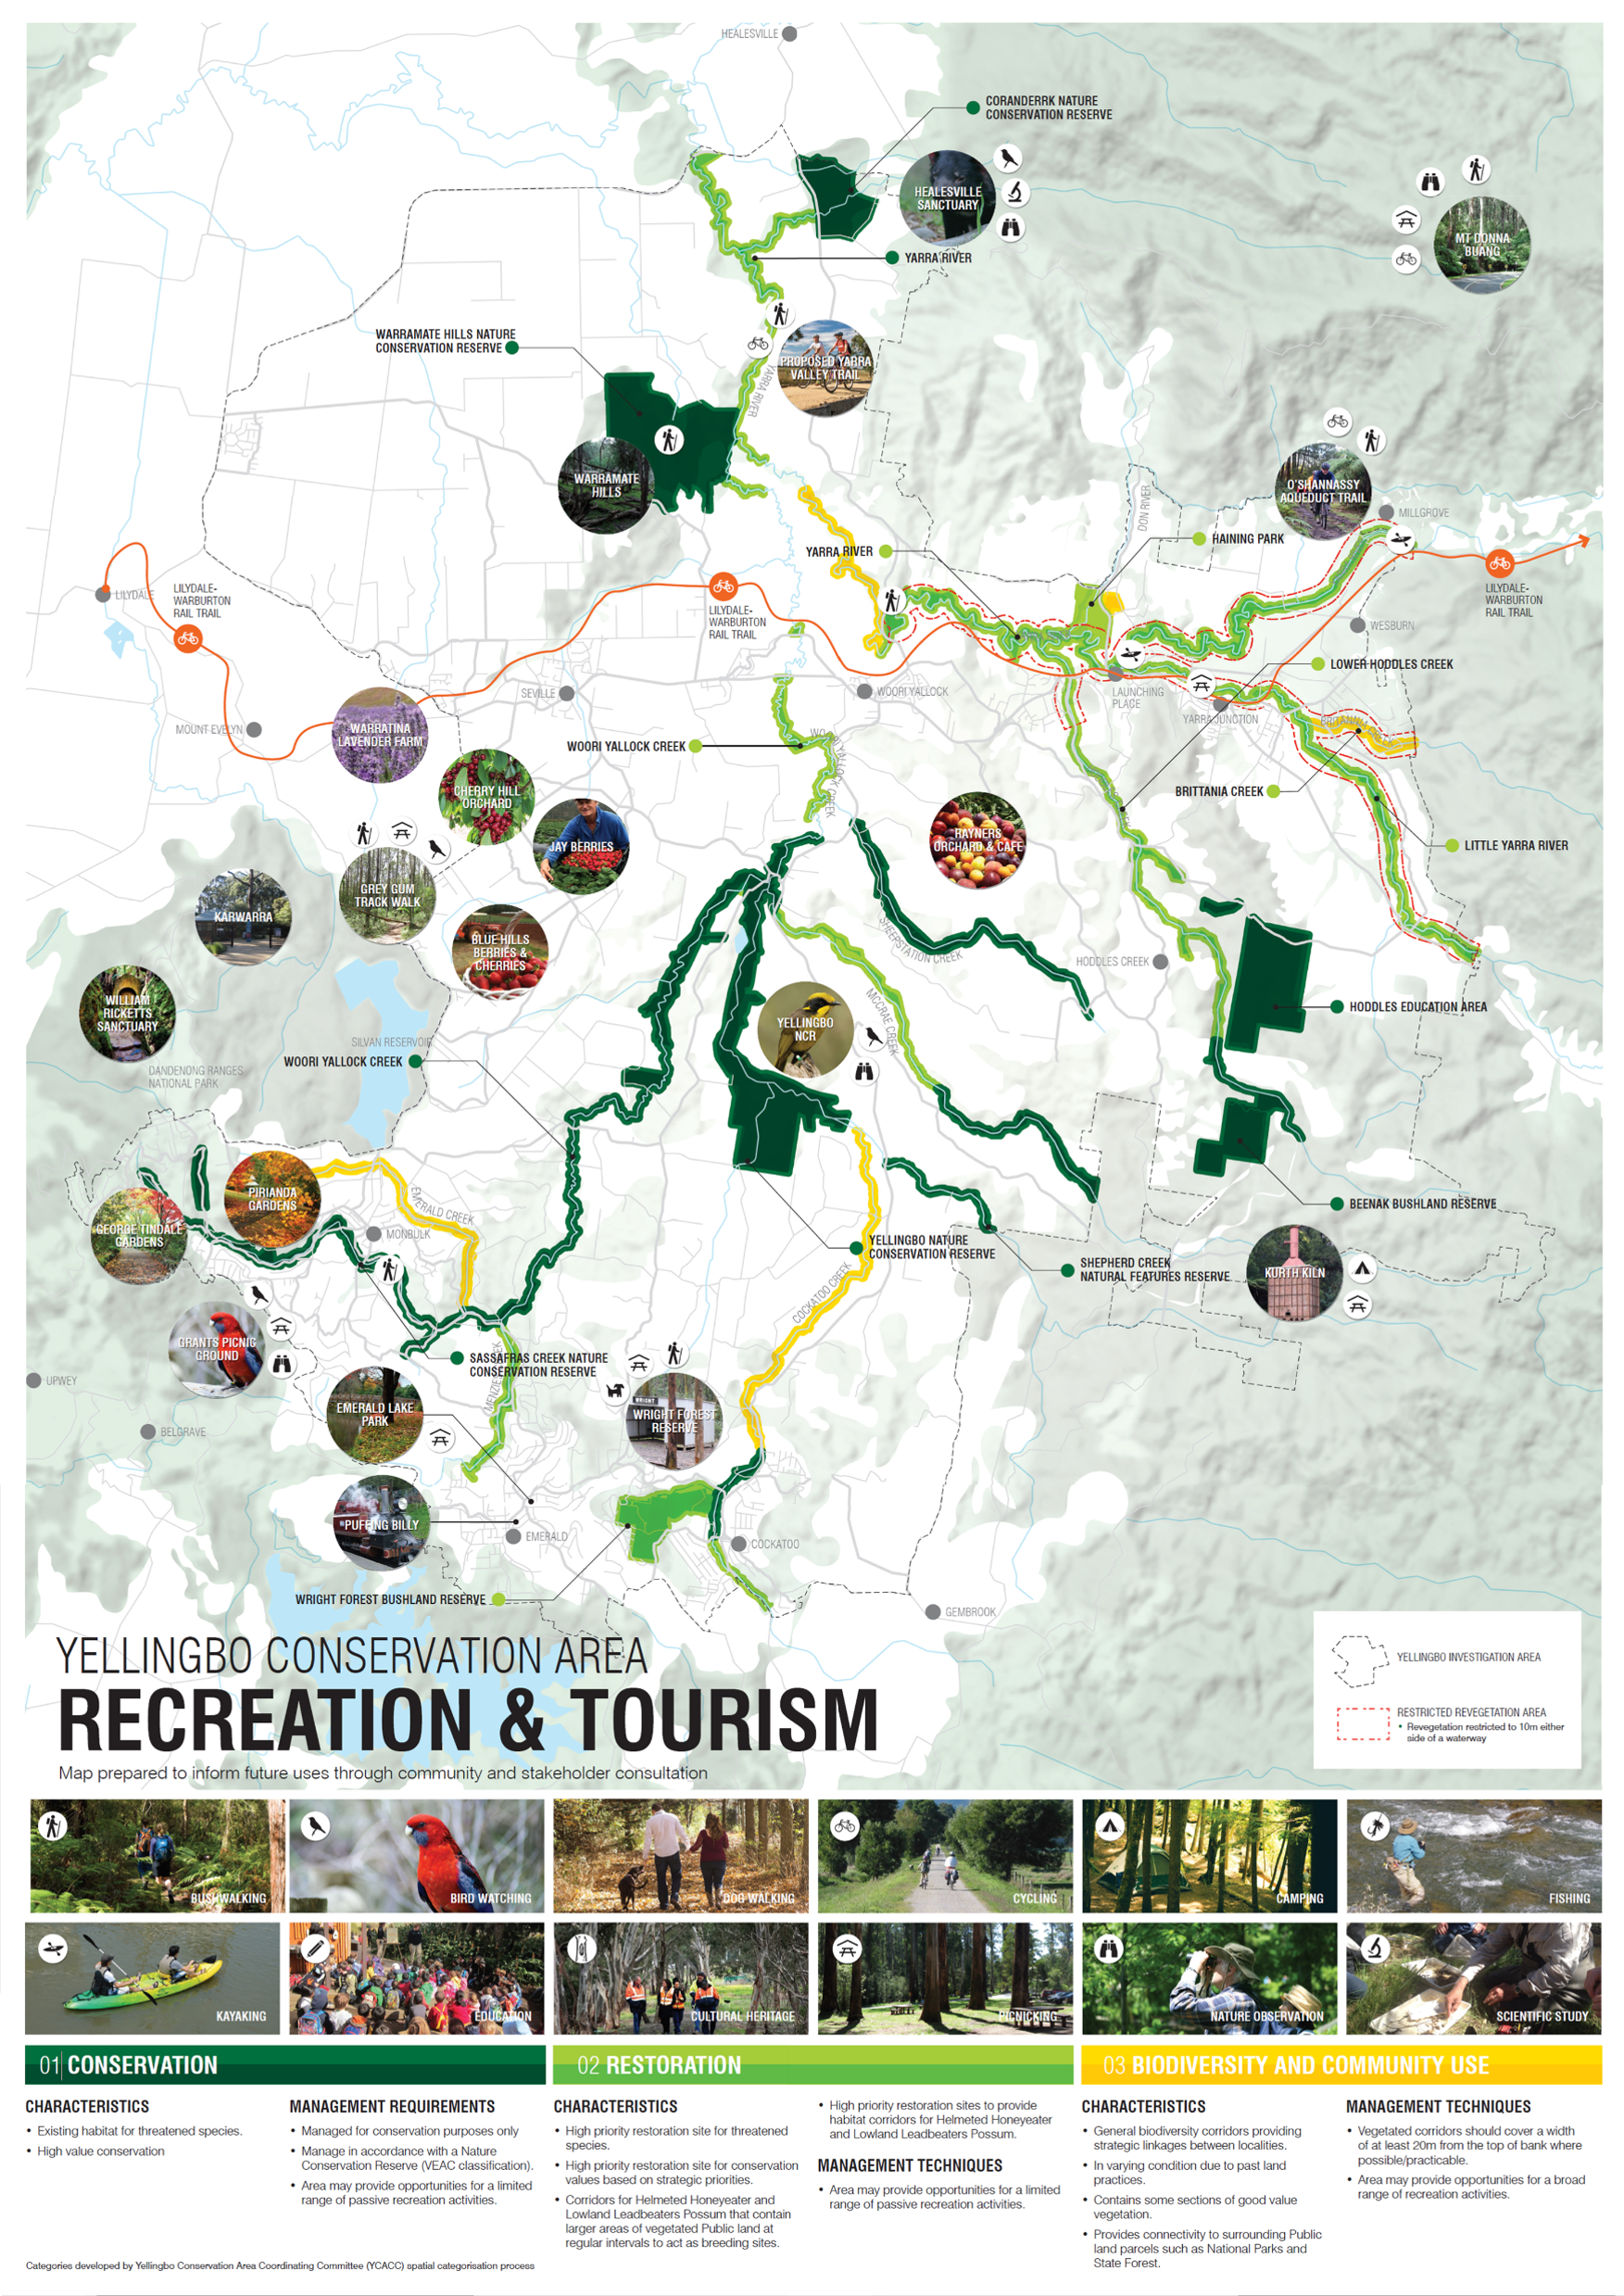 Image of map containing information about the location of recreation and tourism opportunities in or near the new conservation area. These include the Lilydale to Warburton Rail Trail, Healesville Sanctuary, kayaking, walking tracks, and local tourism such as u-pick berries and cafés.